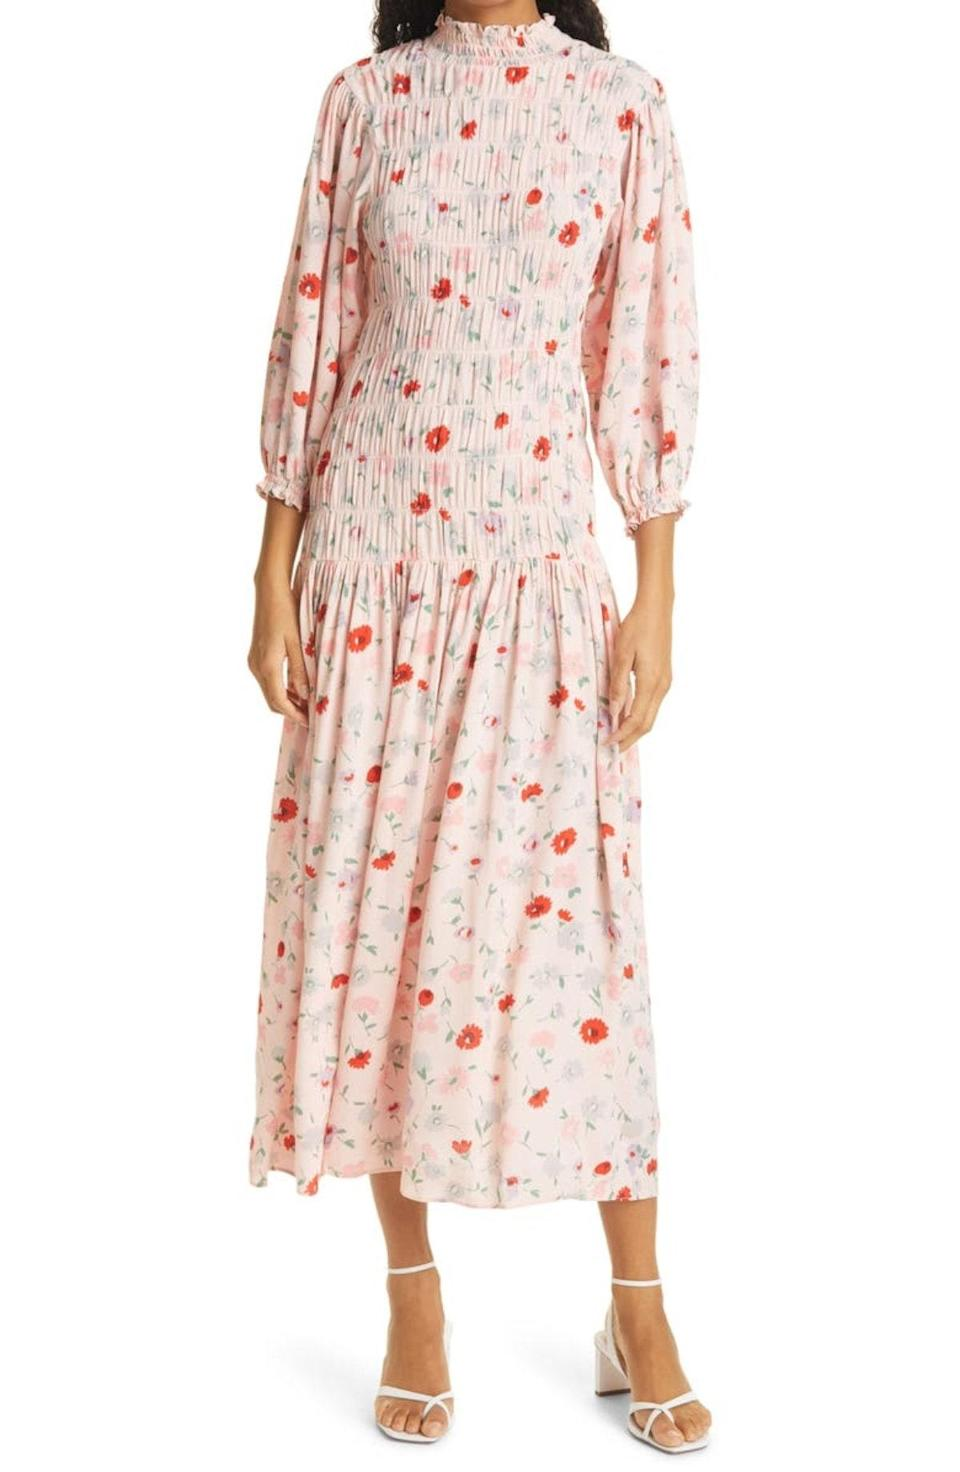 """A printed smocked midi will be a wardrobe MVP this fall. Take cues from the styling and pair with neutral strappy sandals for a no-fail outfit combo. $270, Nordstrom. <a href=""""https://www.nordstrom.com/s/samsoe-samsoe-sarami-floral-long-sleeve-dress/5864600"""" rel=""""nofollow noopener"""" target=""""_blank"""" data-ylk=""""slk:Get it now!"""" class=""""link rapid-noclick-resp"""">Get it now!</a>"""